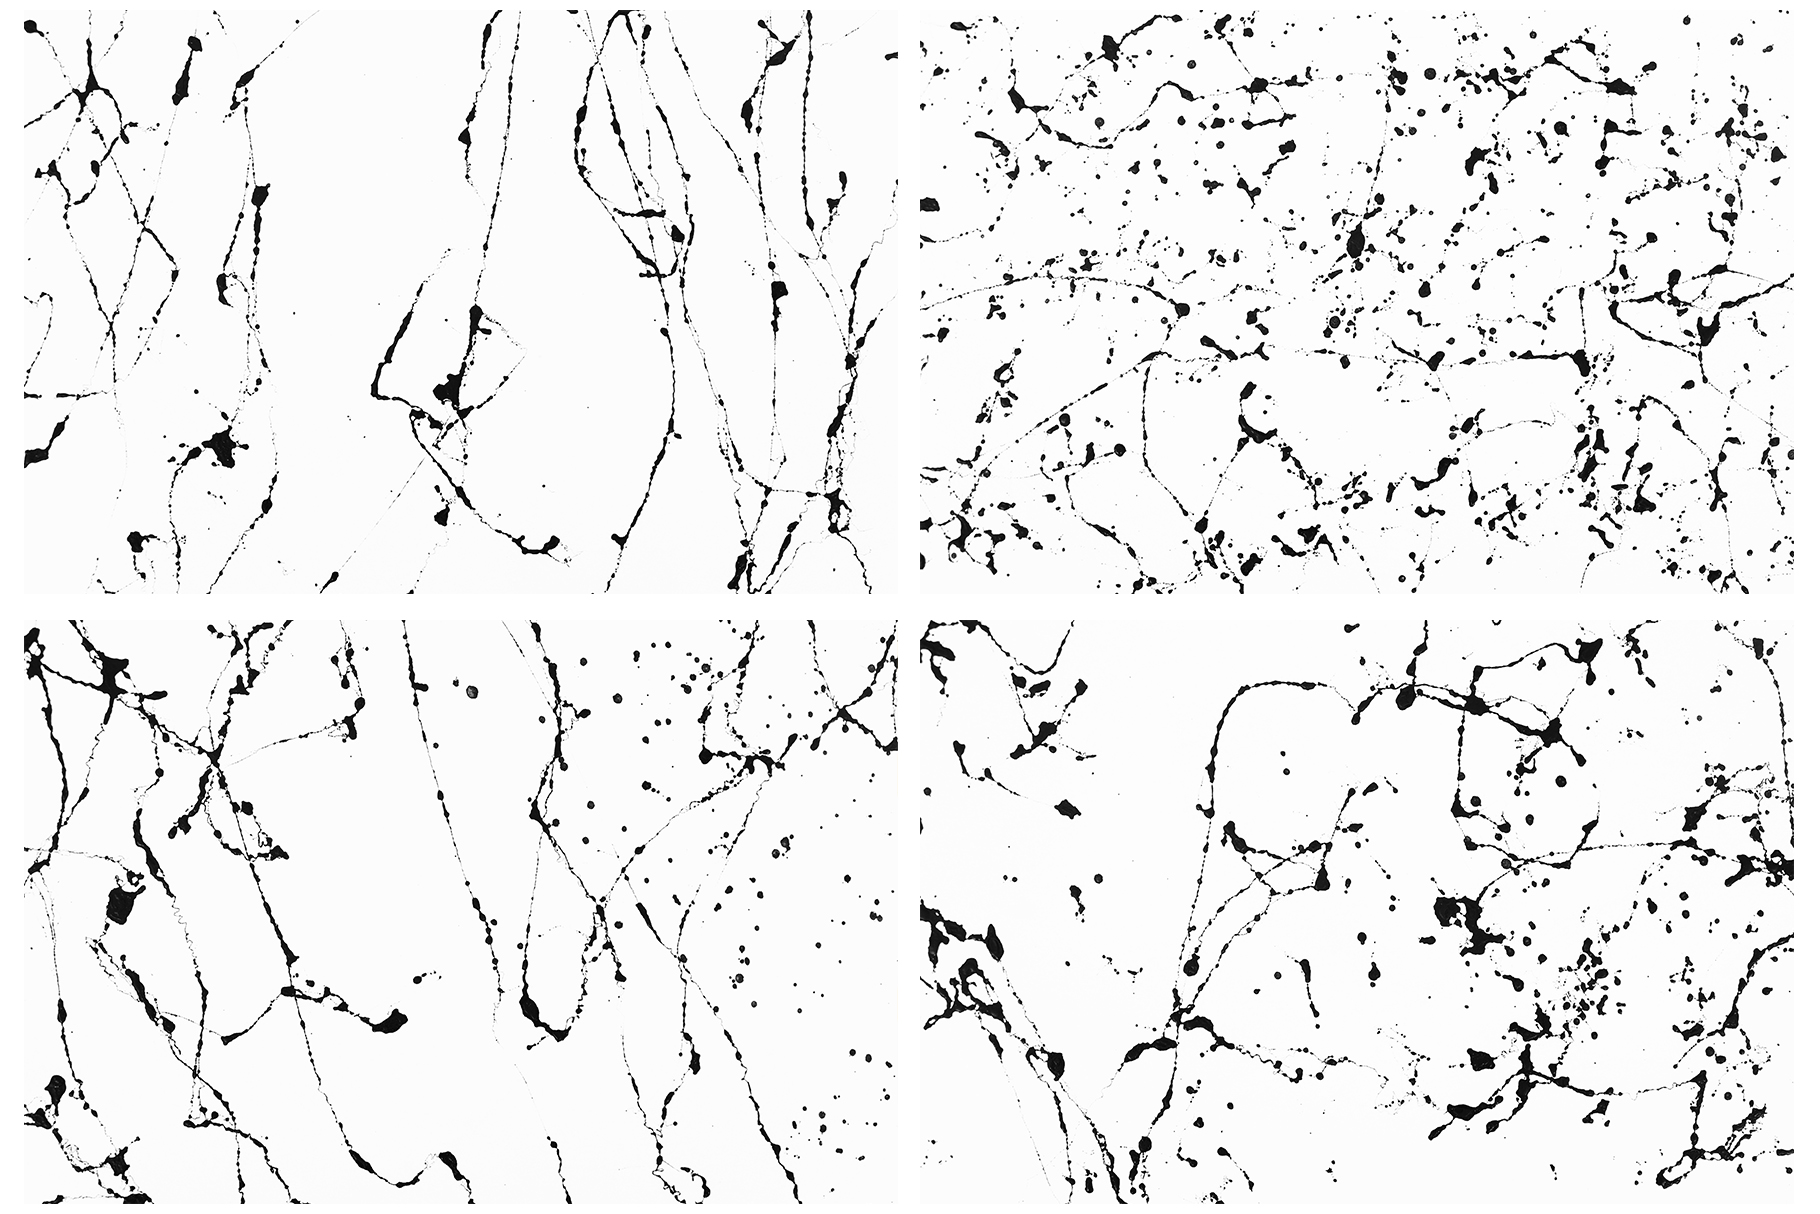 Black White Marble Backgrounds, Black Veins Marble Textures